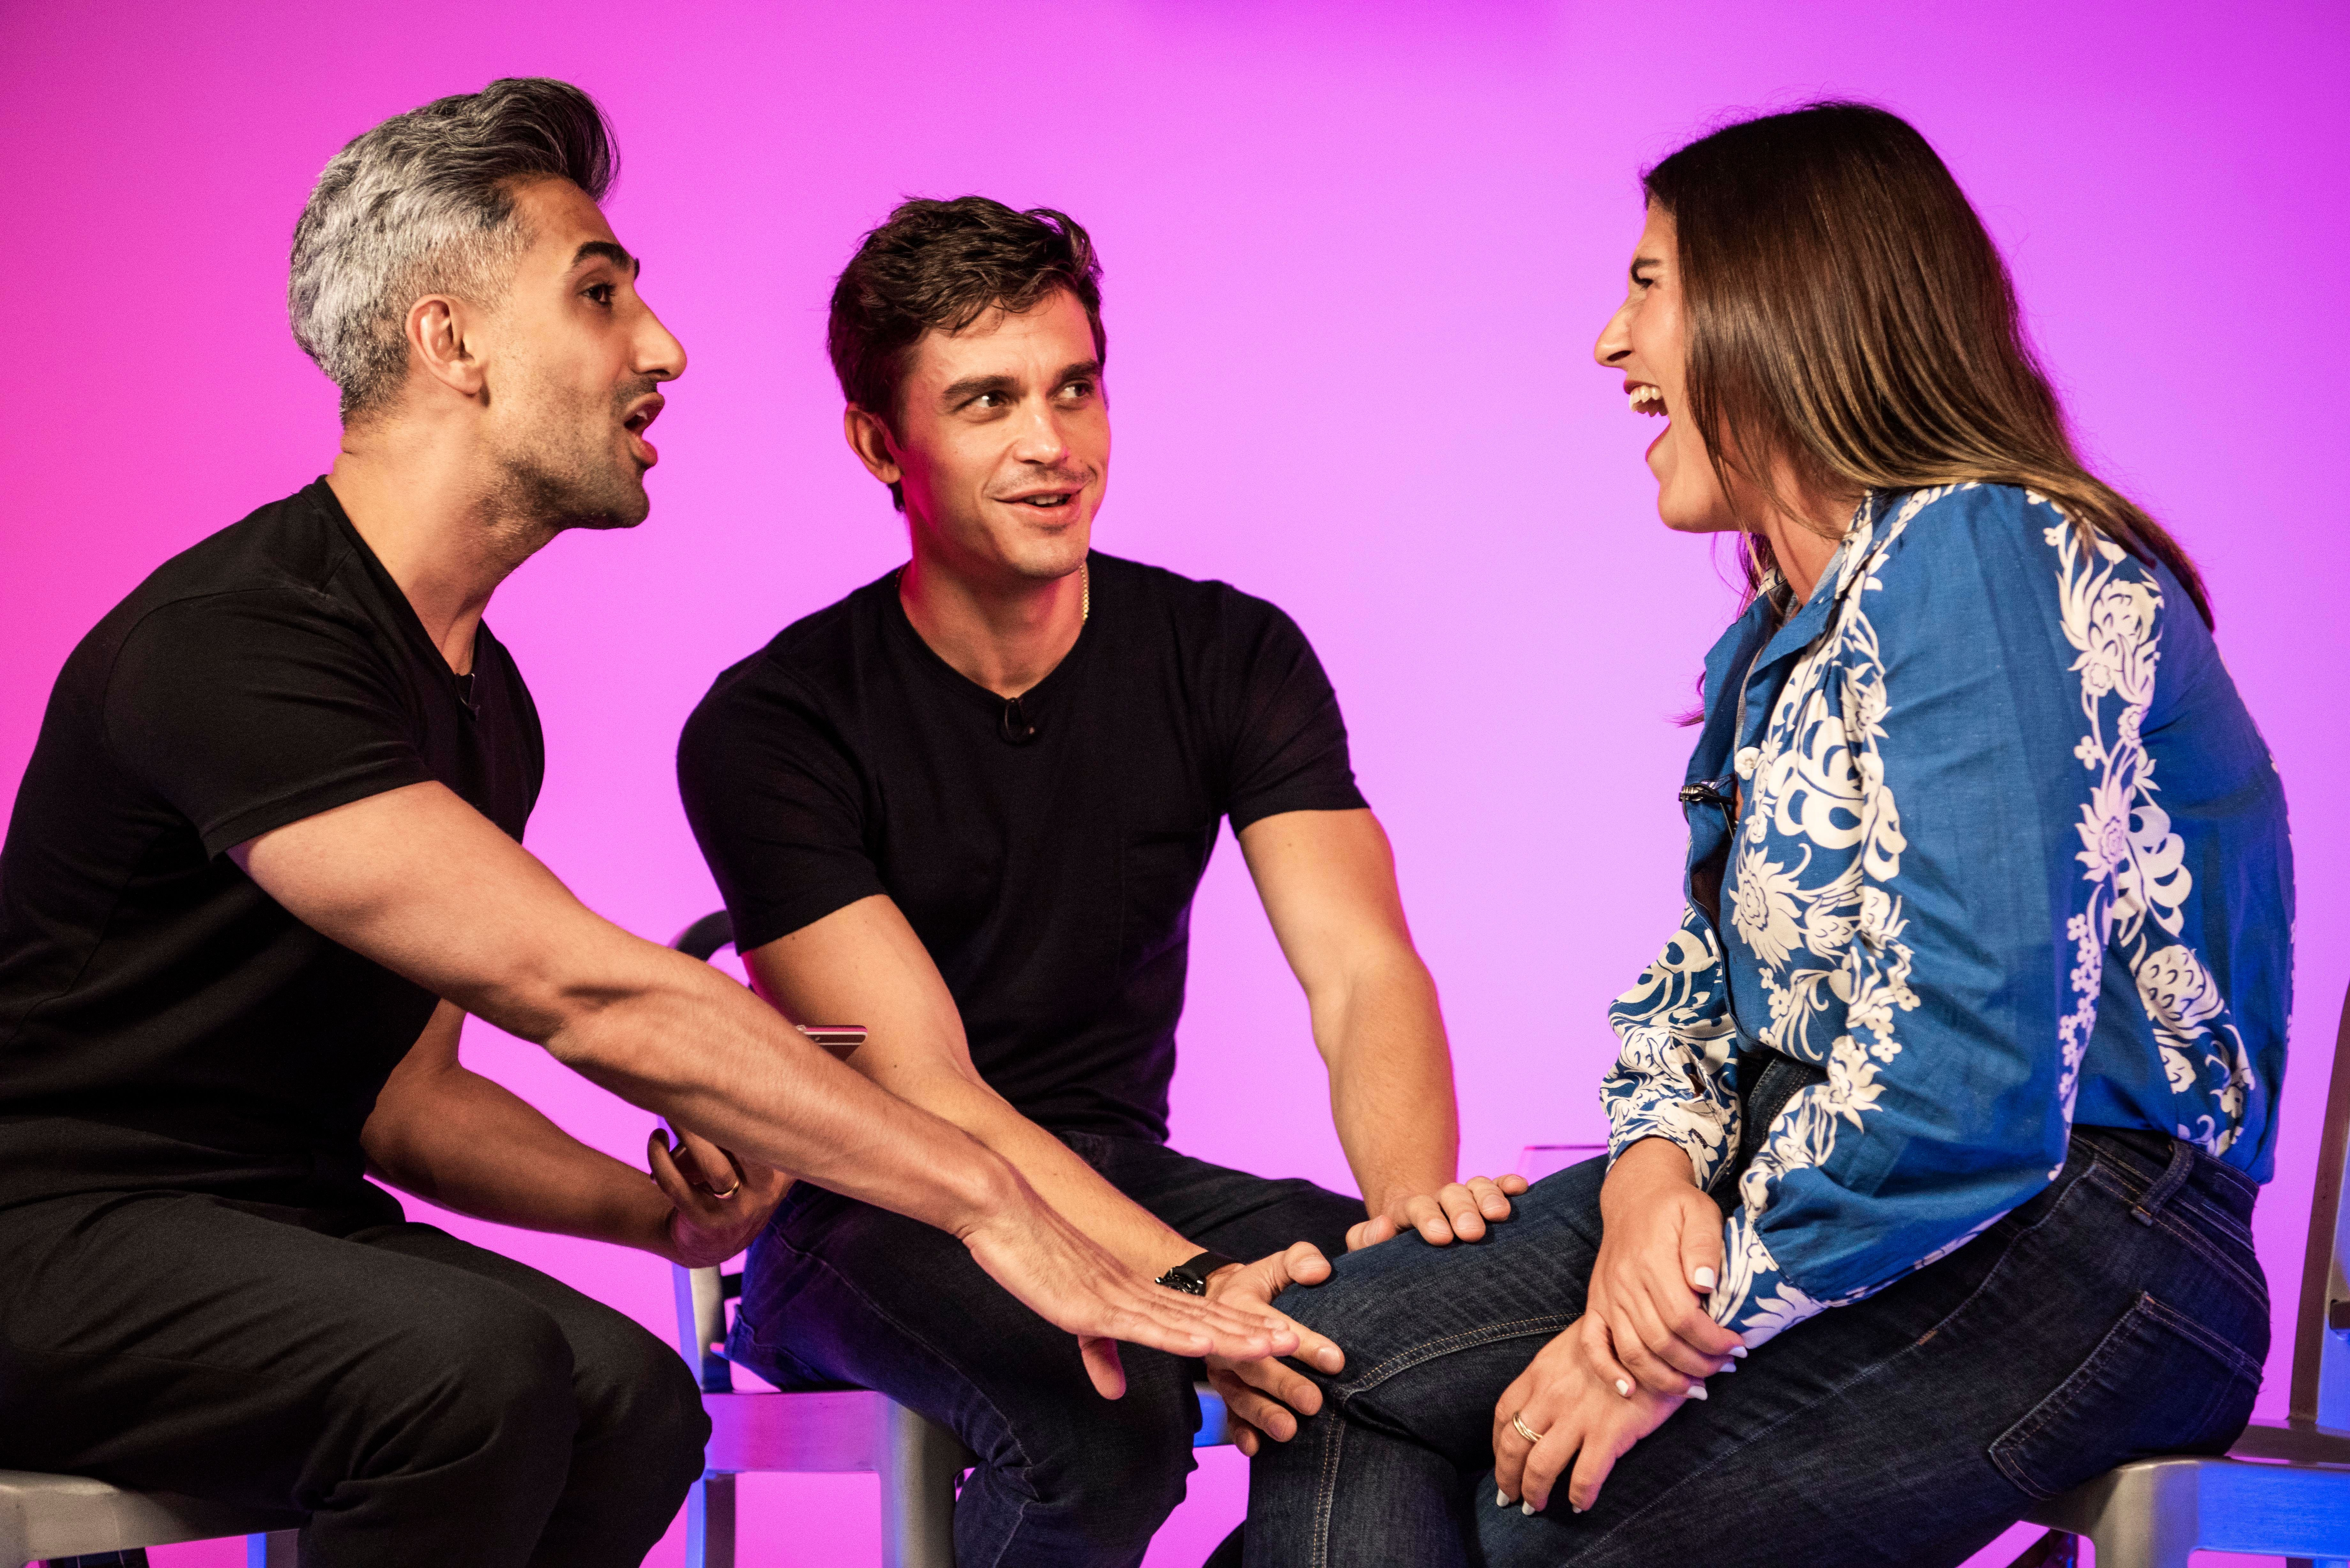 Here's What Happened When Tan And Antoni 'Queer Eyed' My Love